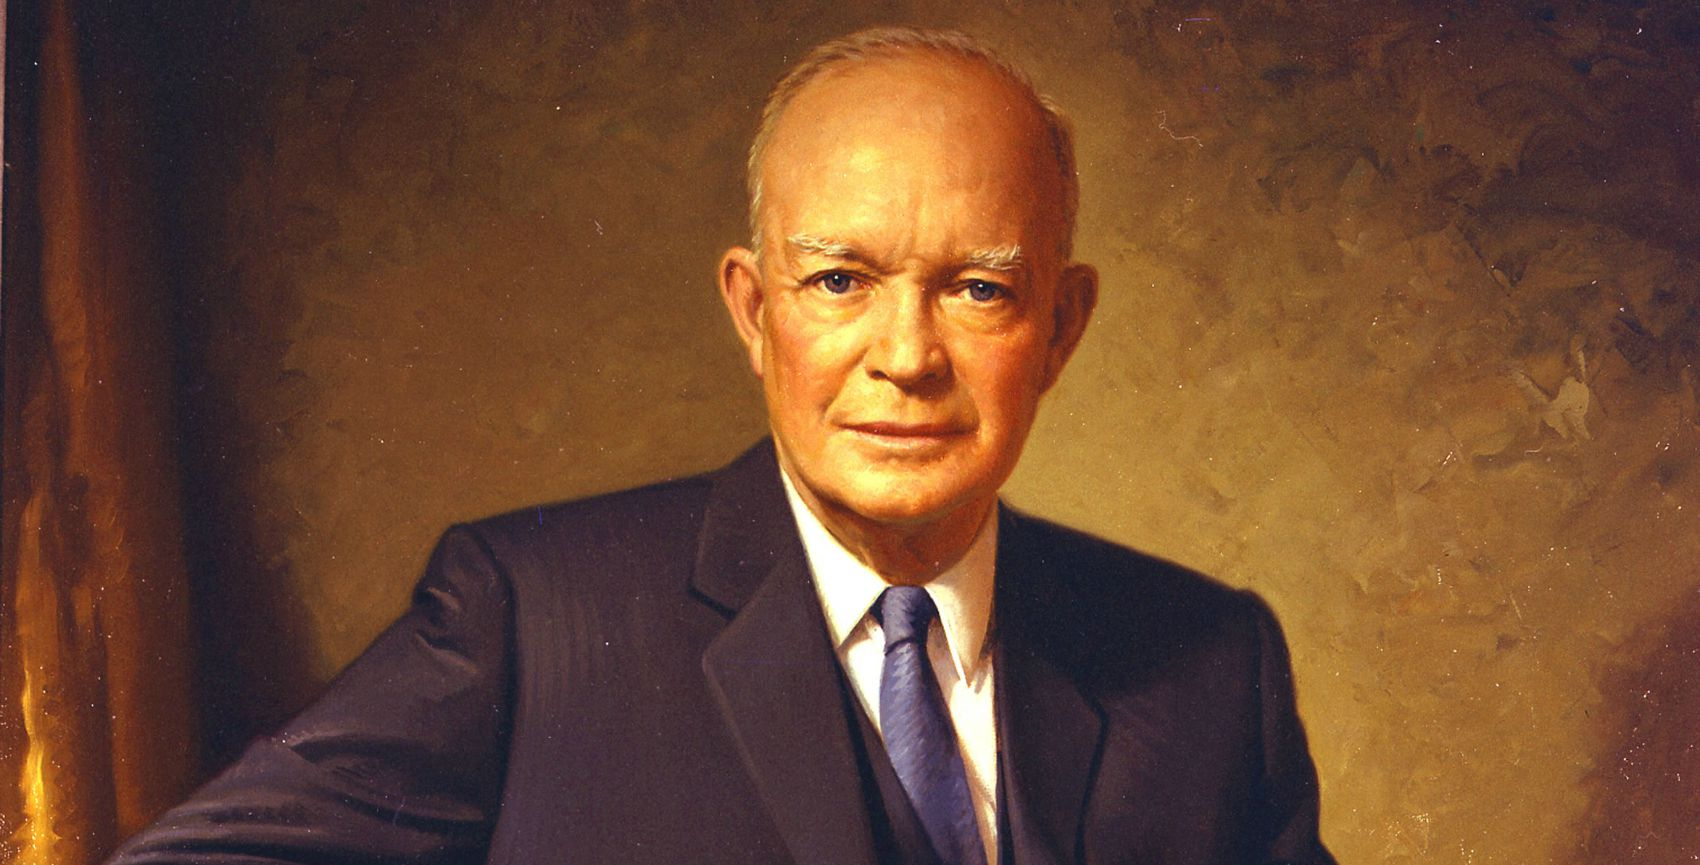 the early life and education of dwight eisenhower Early career eisenhower was the third of seven sons of david jacob and ida elizabeth (stover) eisenhower in the spring of 1891 the eisenhowers left denison, texas, and returned to abilene, kansas, where their forebears had settled as part of a mennonite colony david worked in a creamery the family was poor and dwight and his brothers were introduced to hard work and a strong religious.